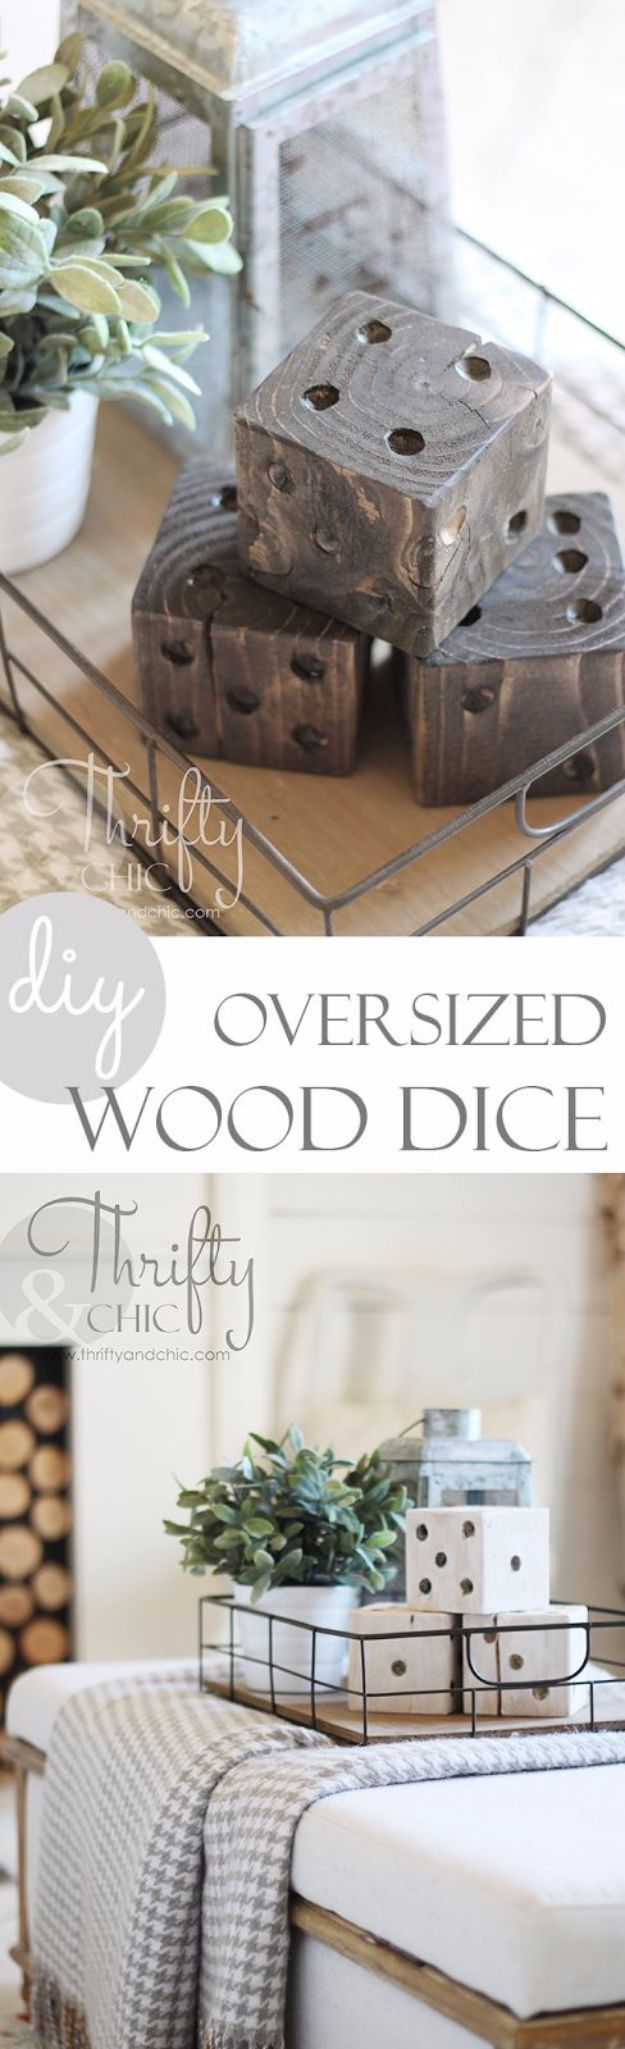 50 Rustic Farmhouse Ideas To Make And Sell Rustic Crafts Country